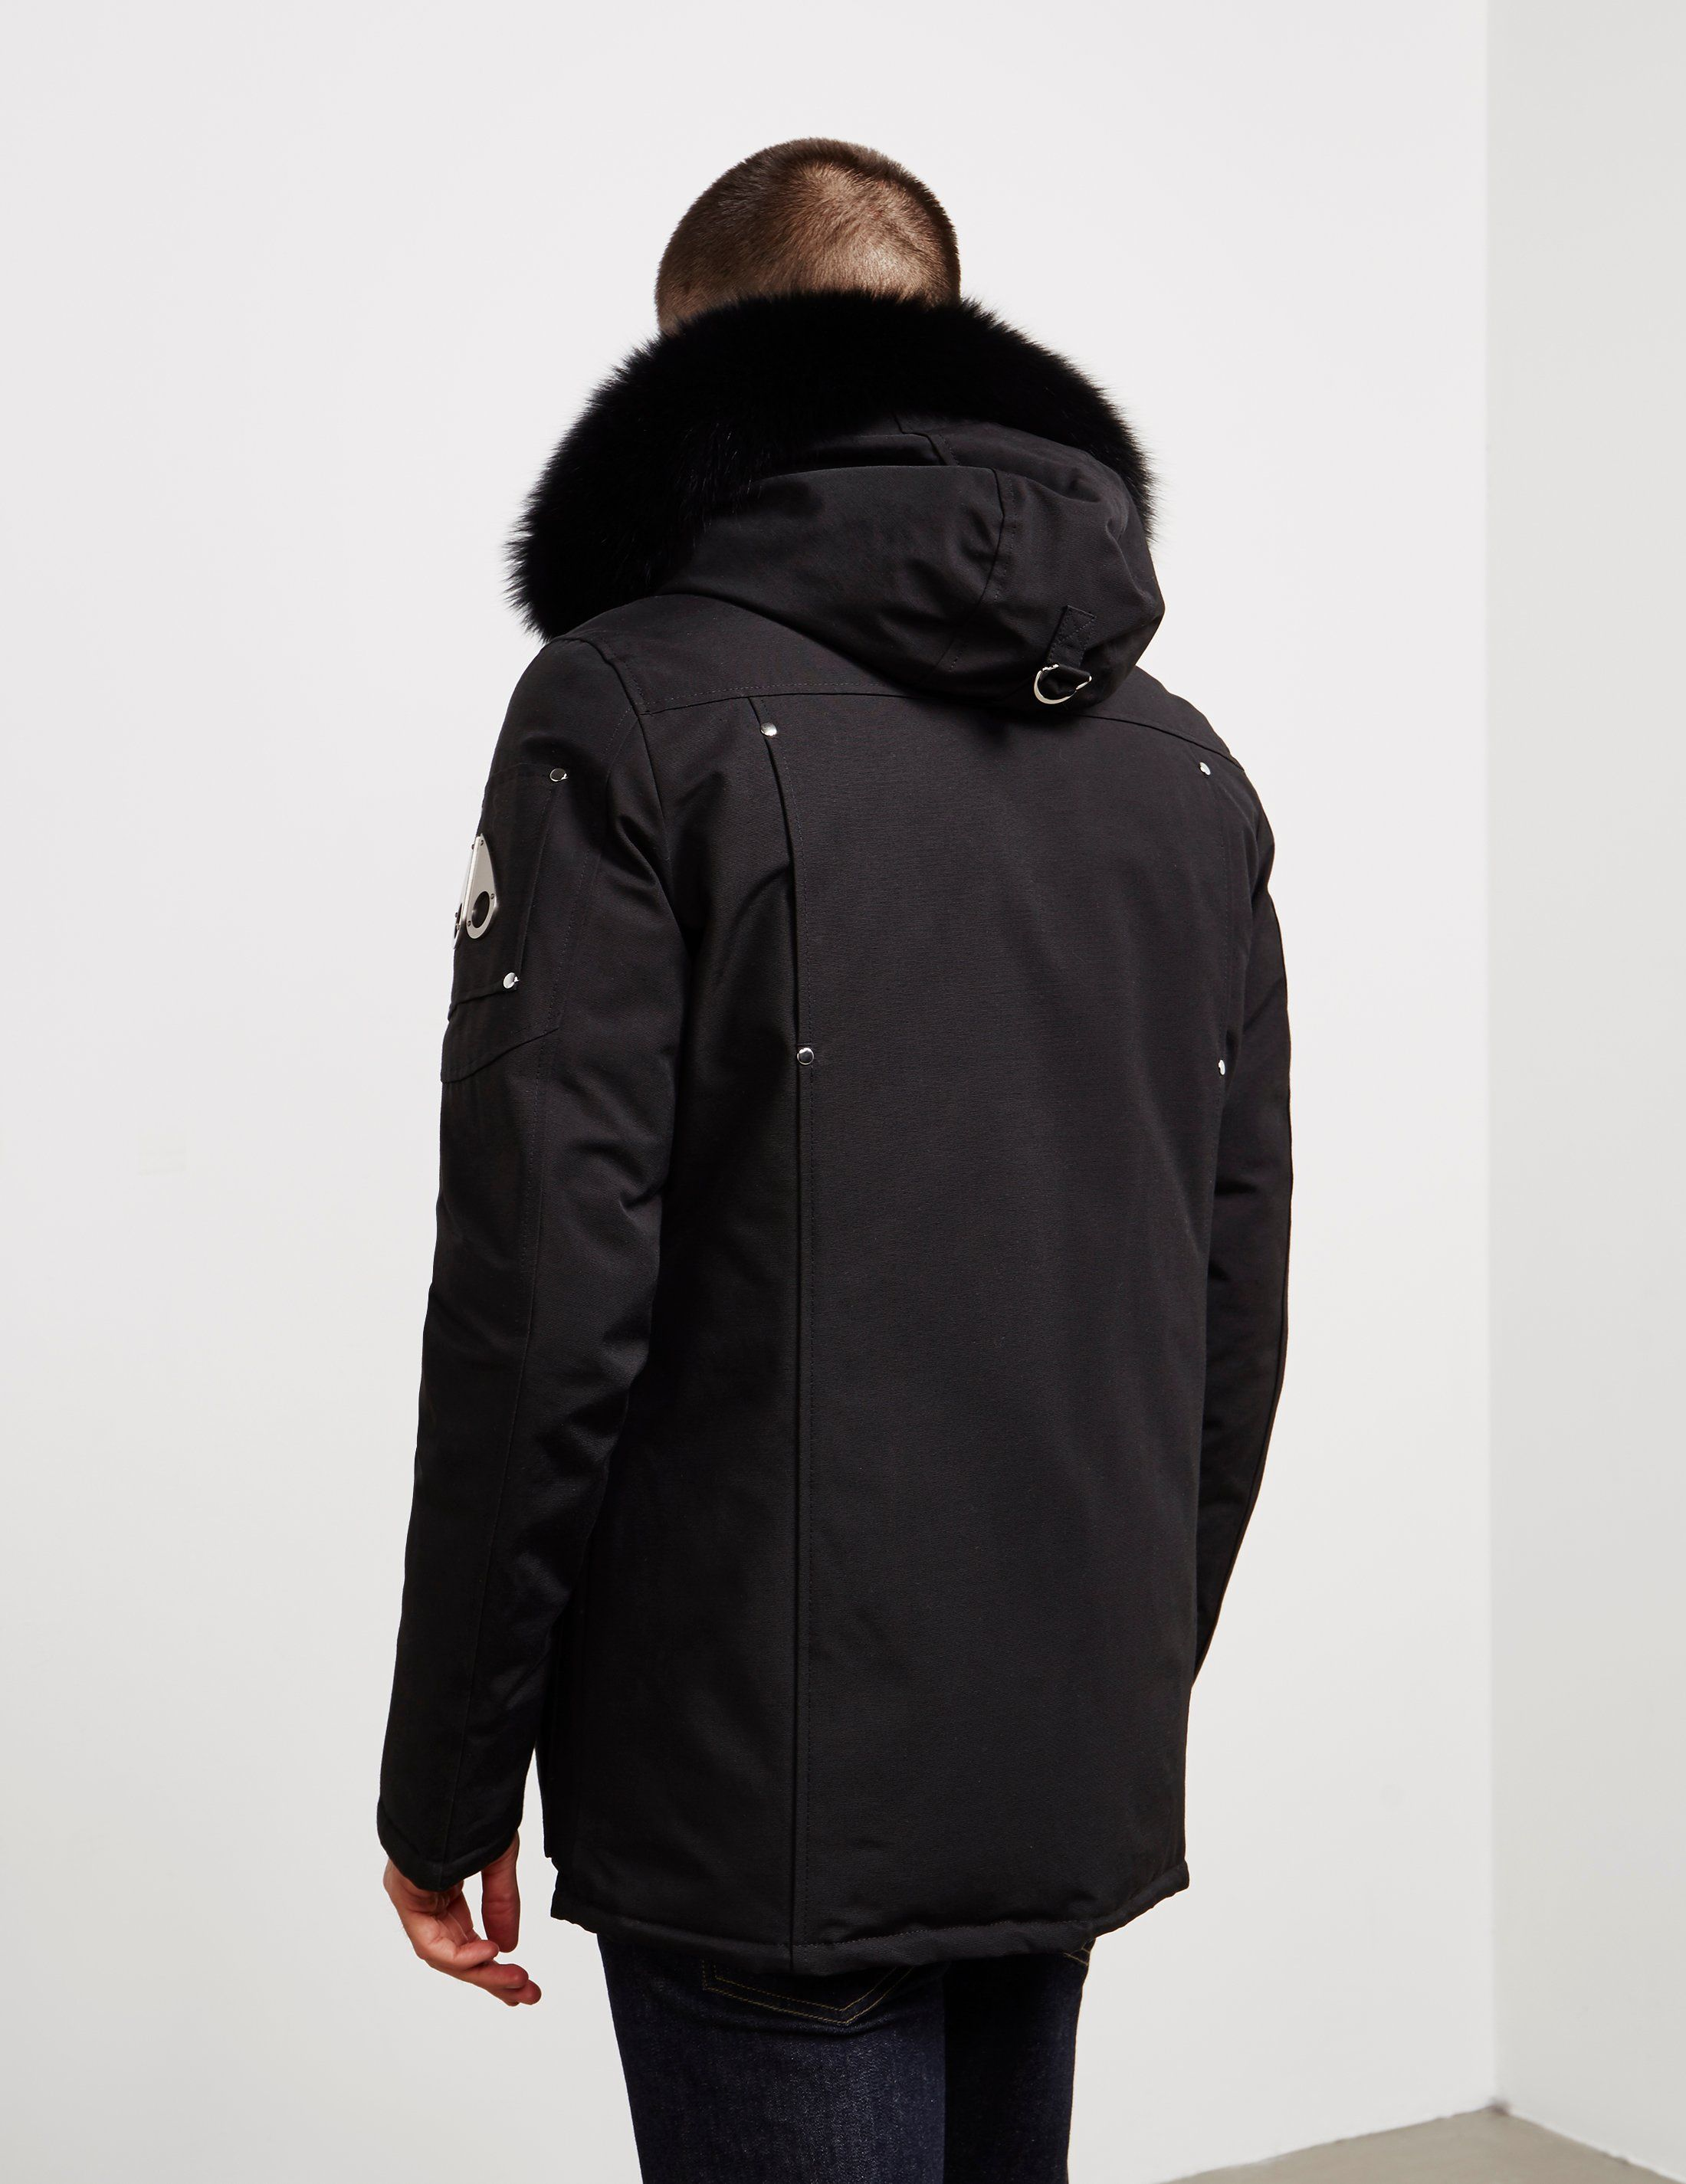 Moose Knuckles Pear Padded Parka Jacket